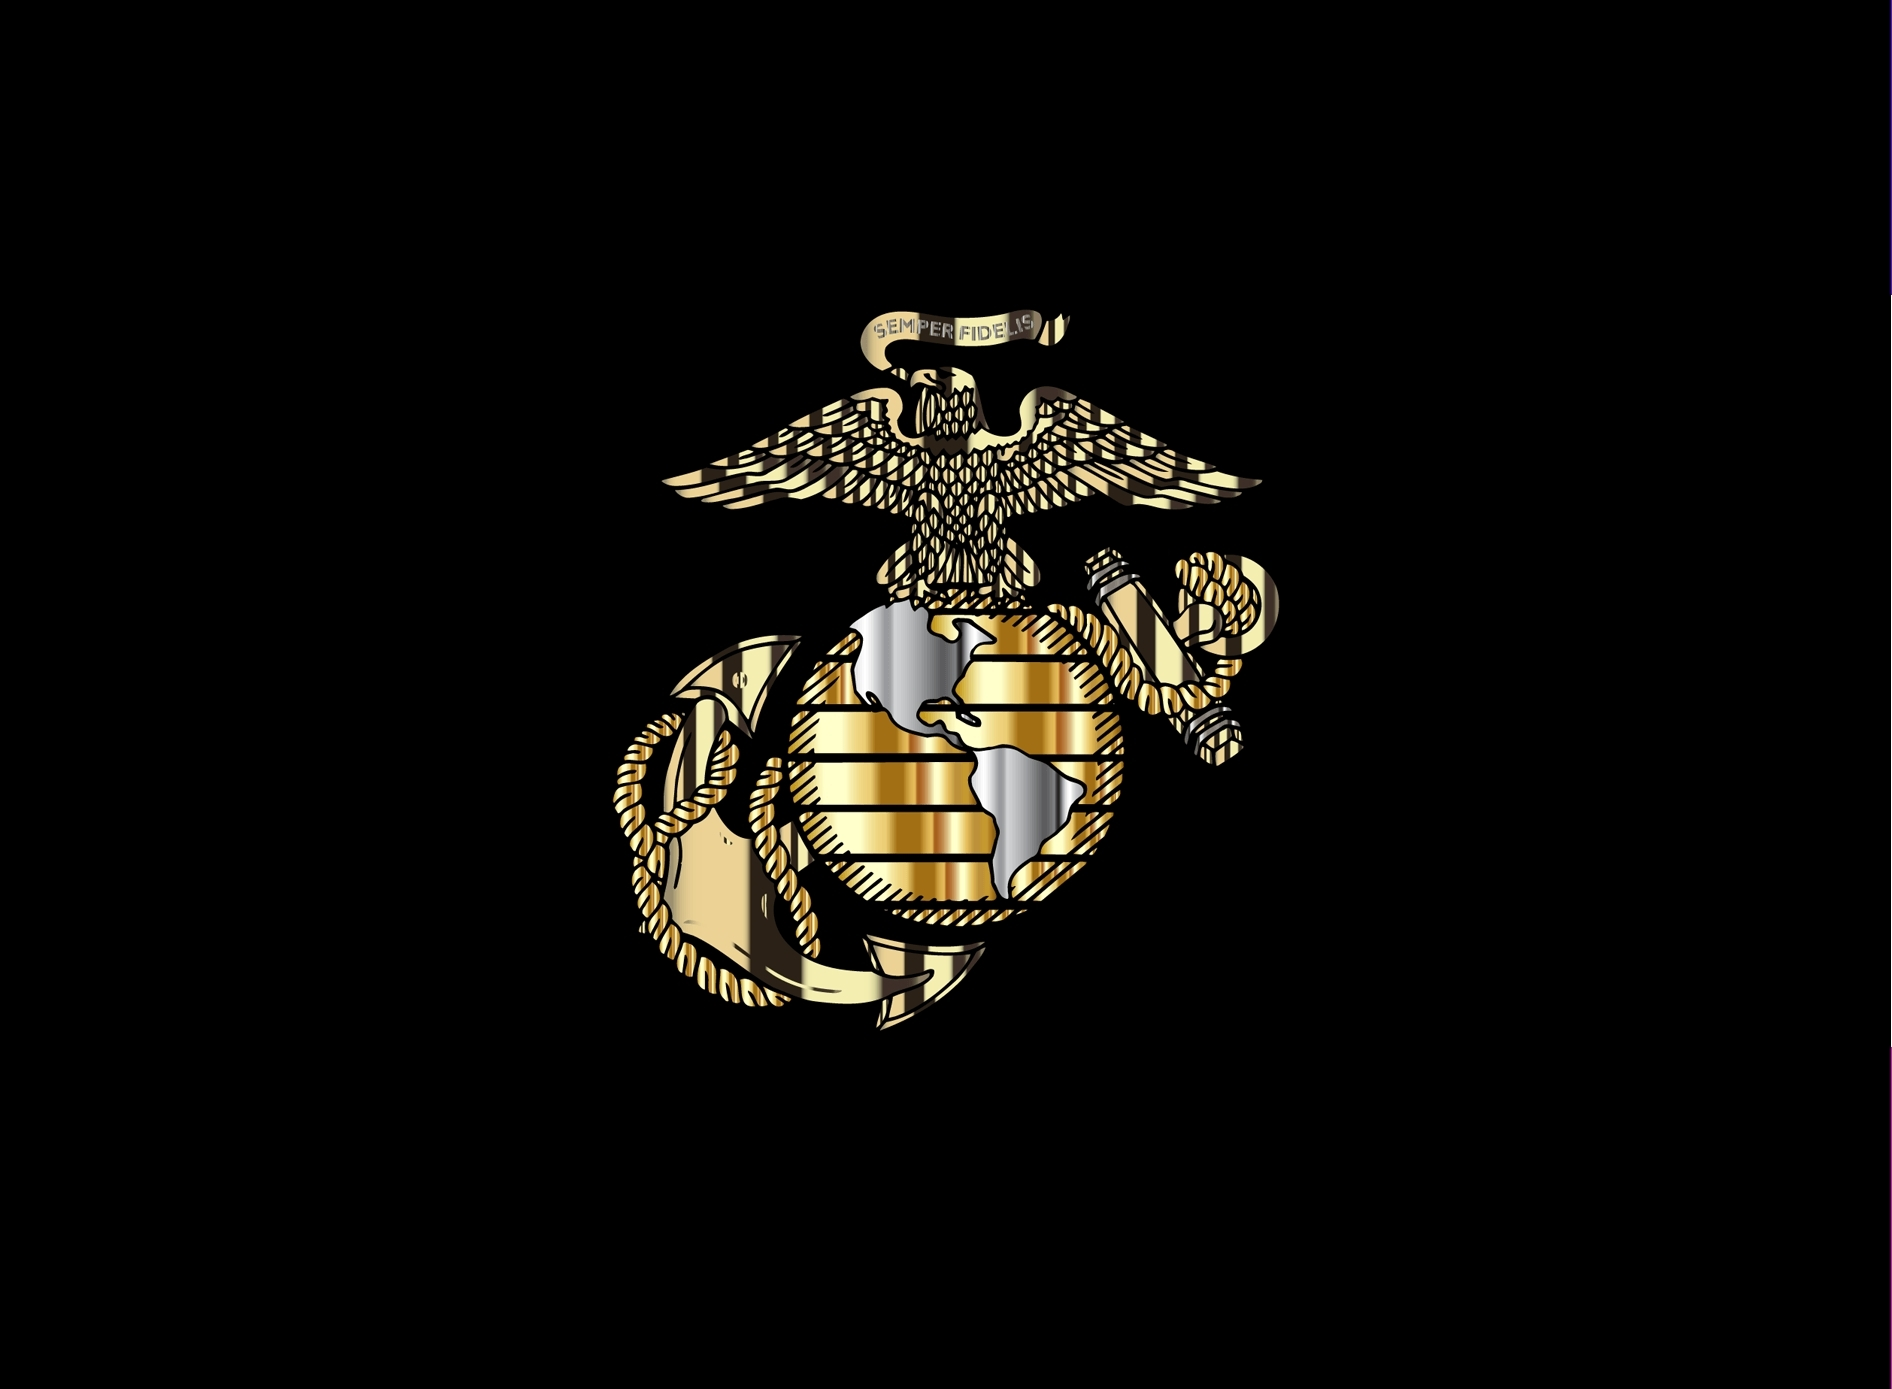 10 Top Marine Corp Iphone Wallpaper FULL HD 1920×1080 For PC Background